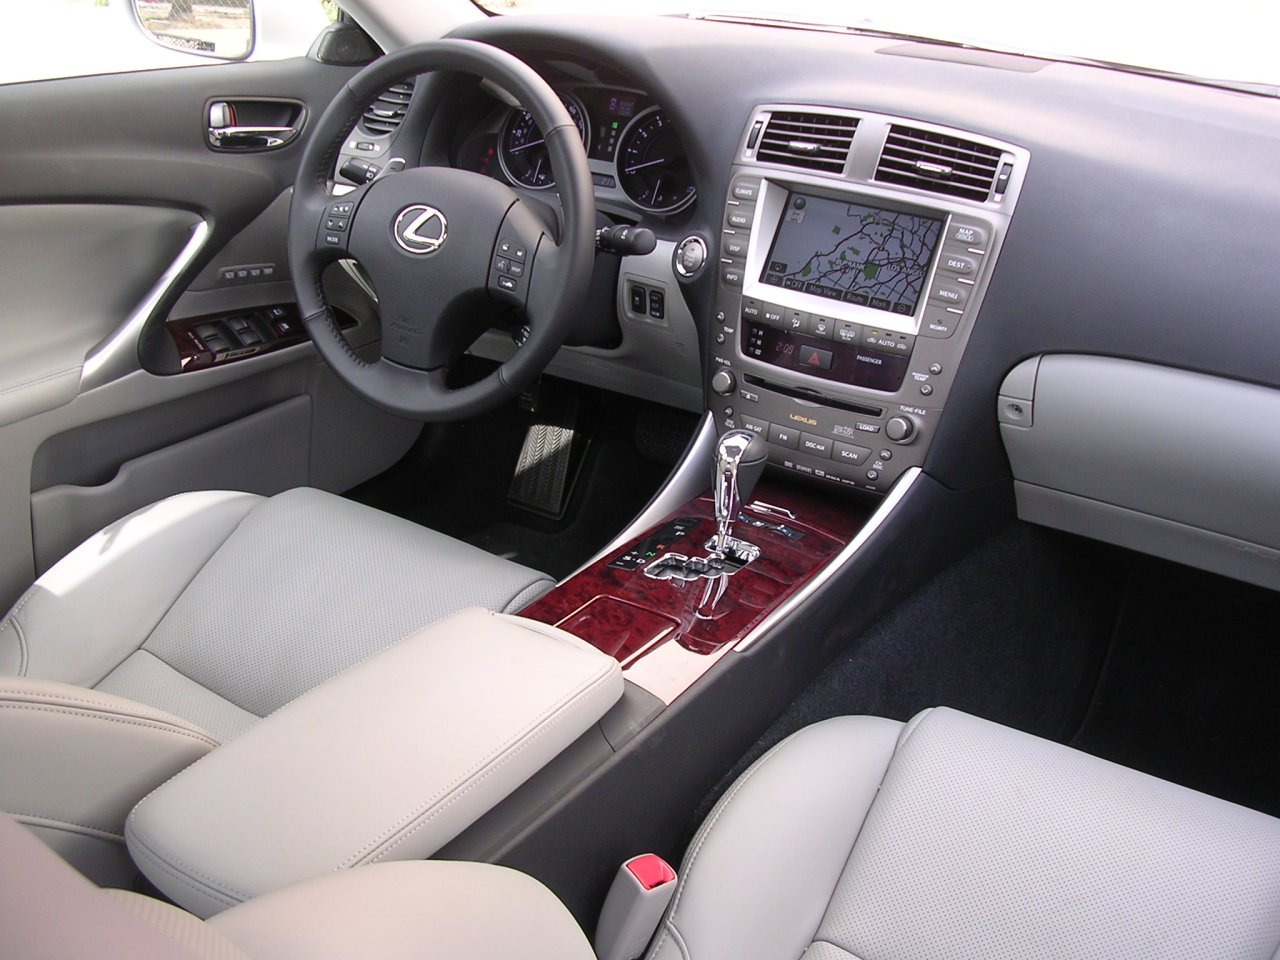 2007 lexus is 350 interior pictures cargurus. Black Bedroom Furniture Sets. Home Design Ideas